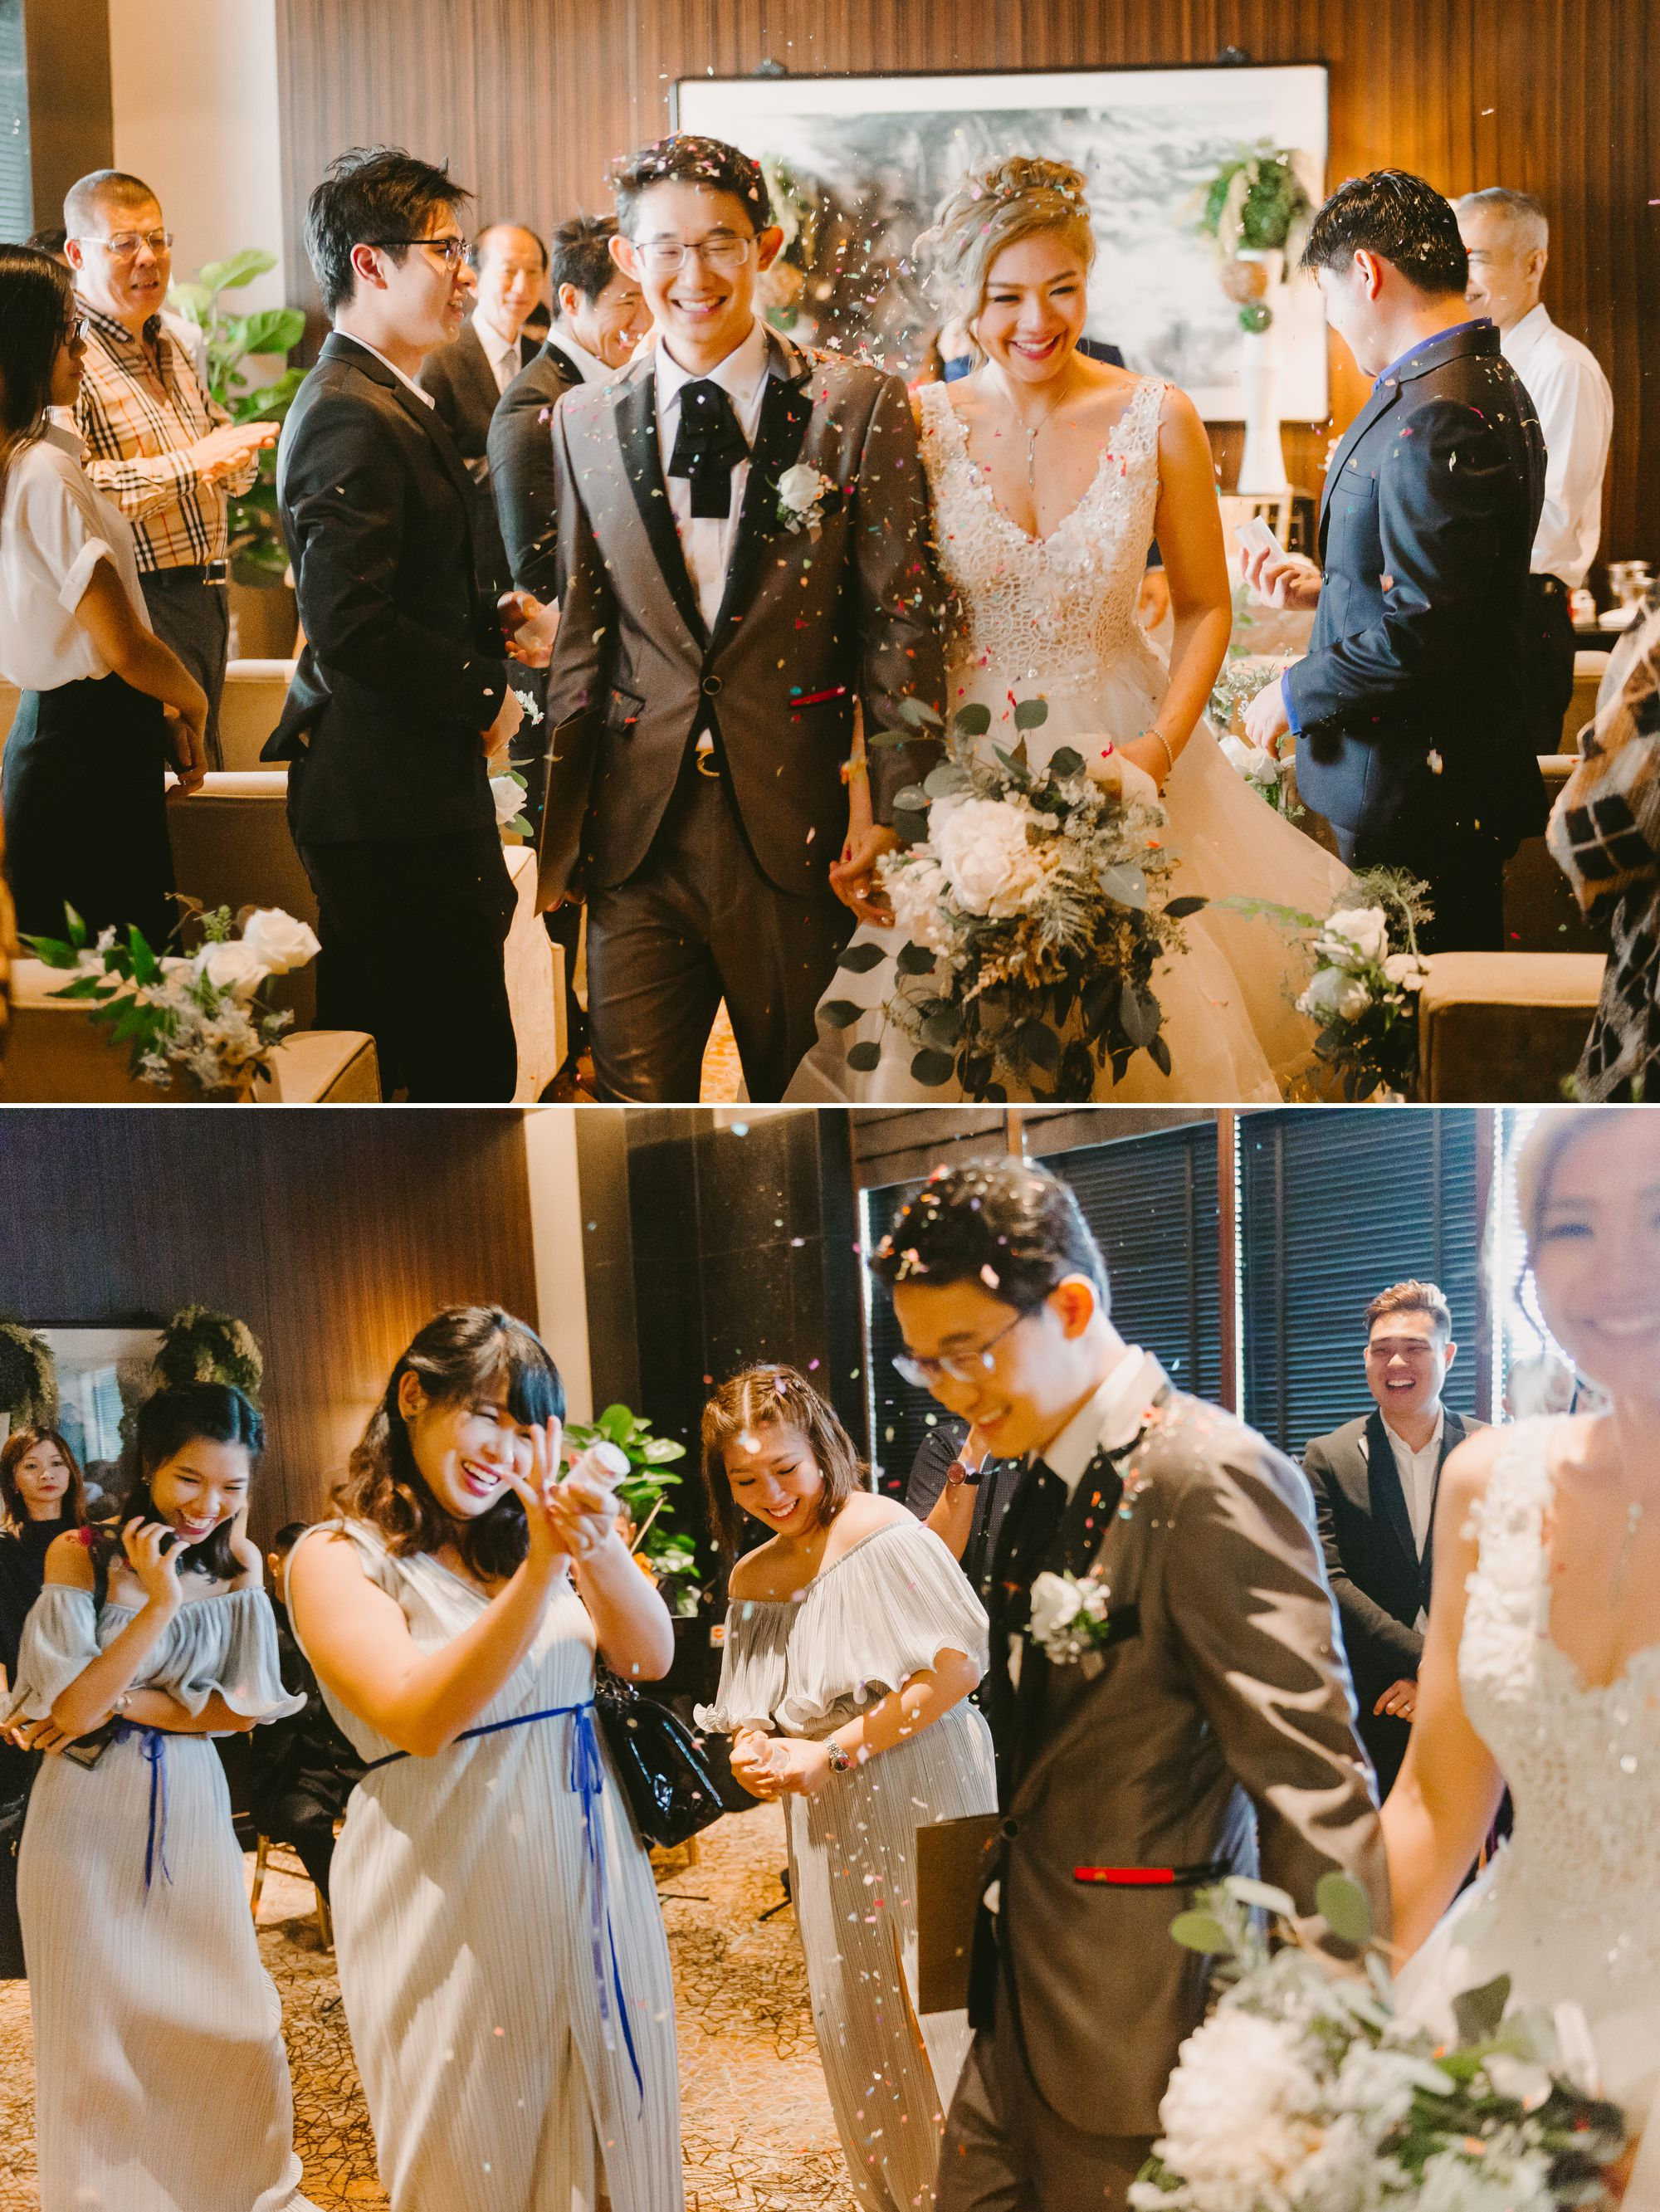 wedding_photographer_singapore 27.jpg